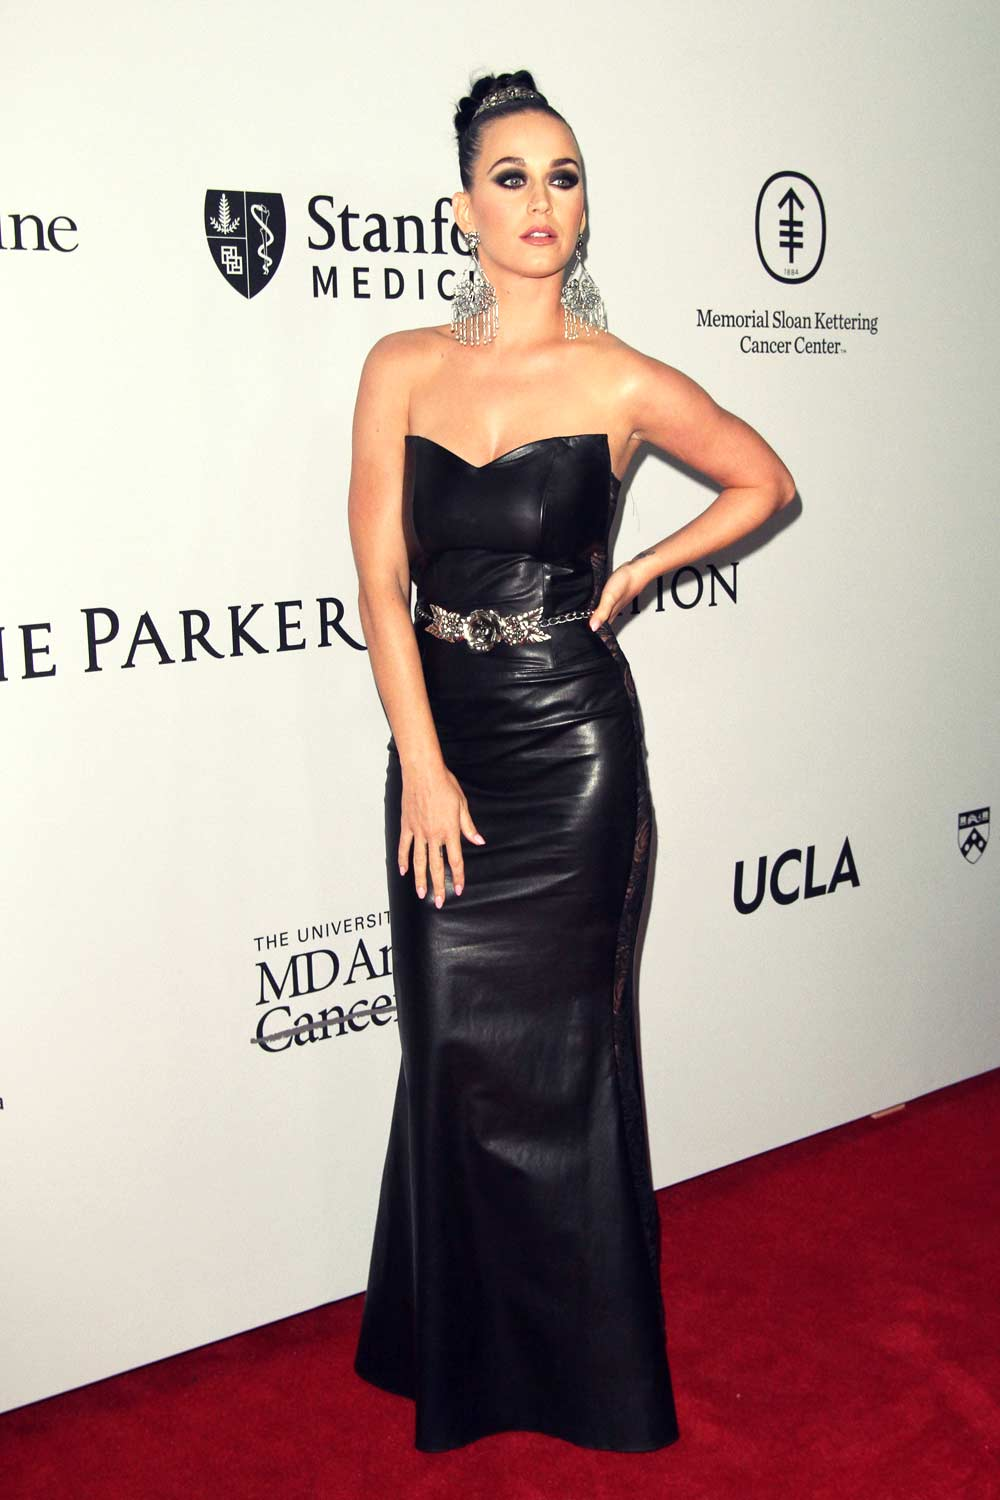 Katy Perry Attends The Parker Institute For Cancer